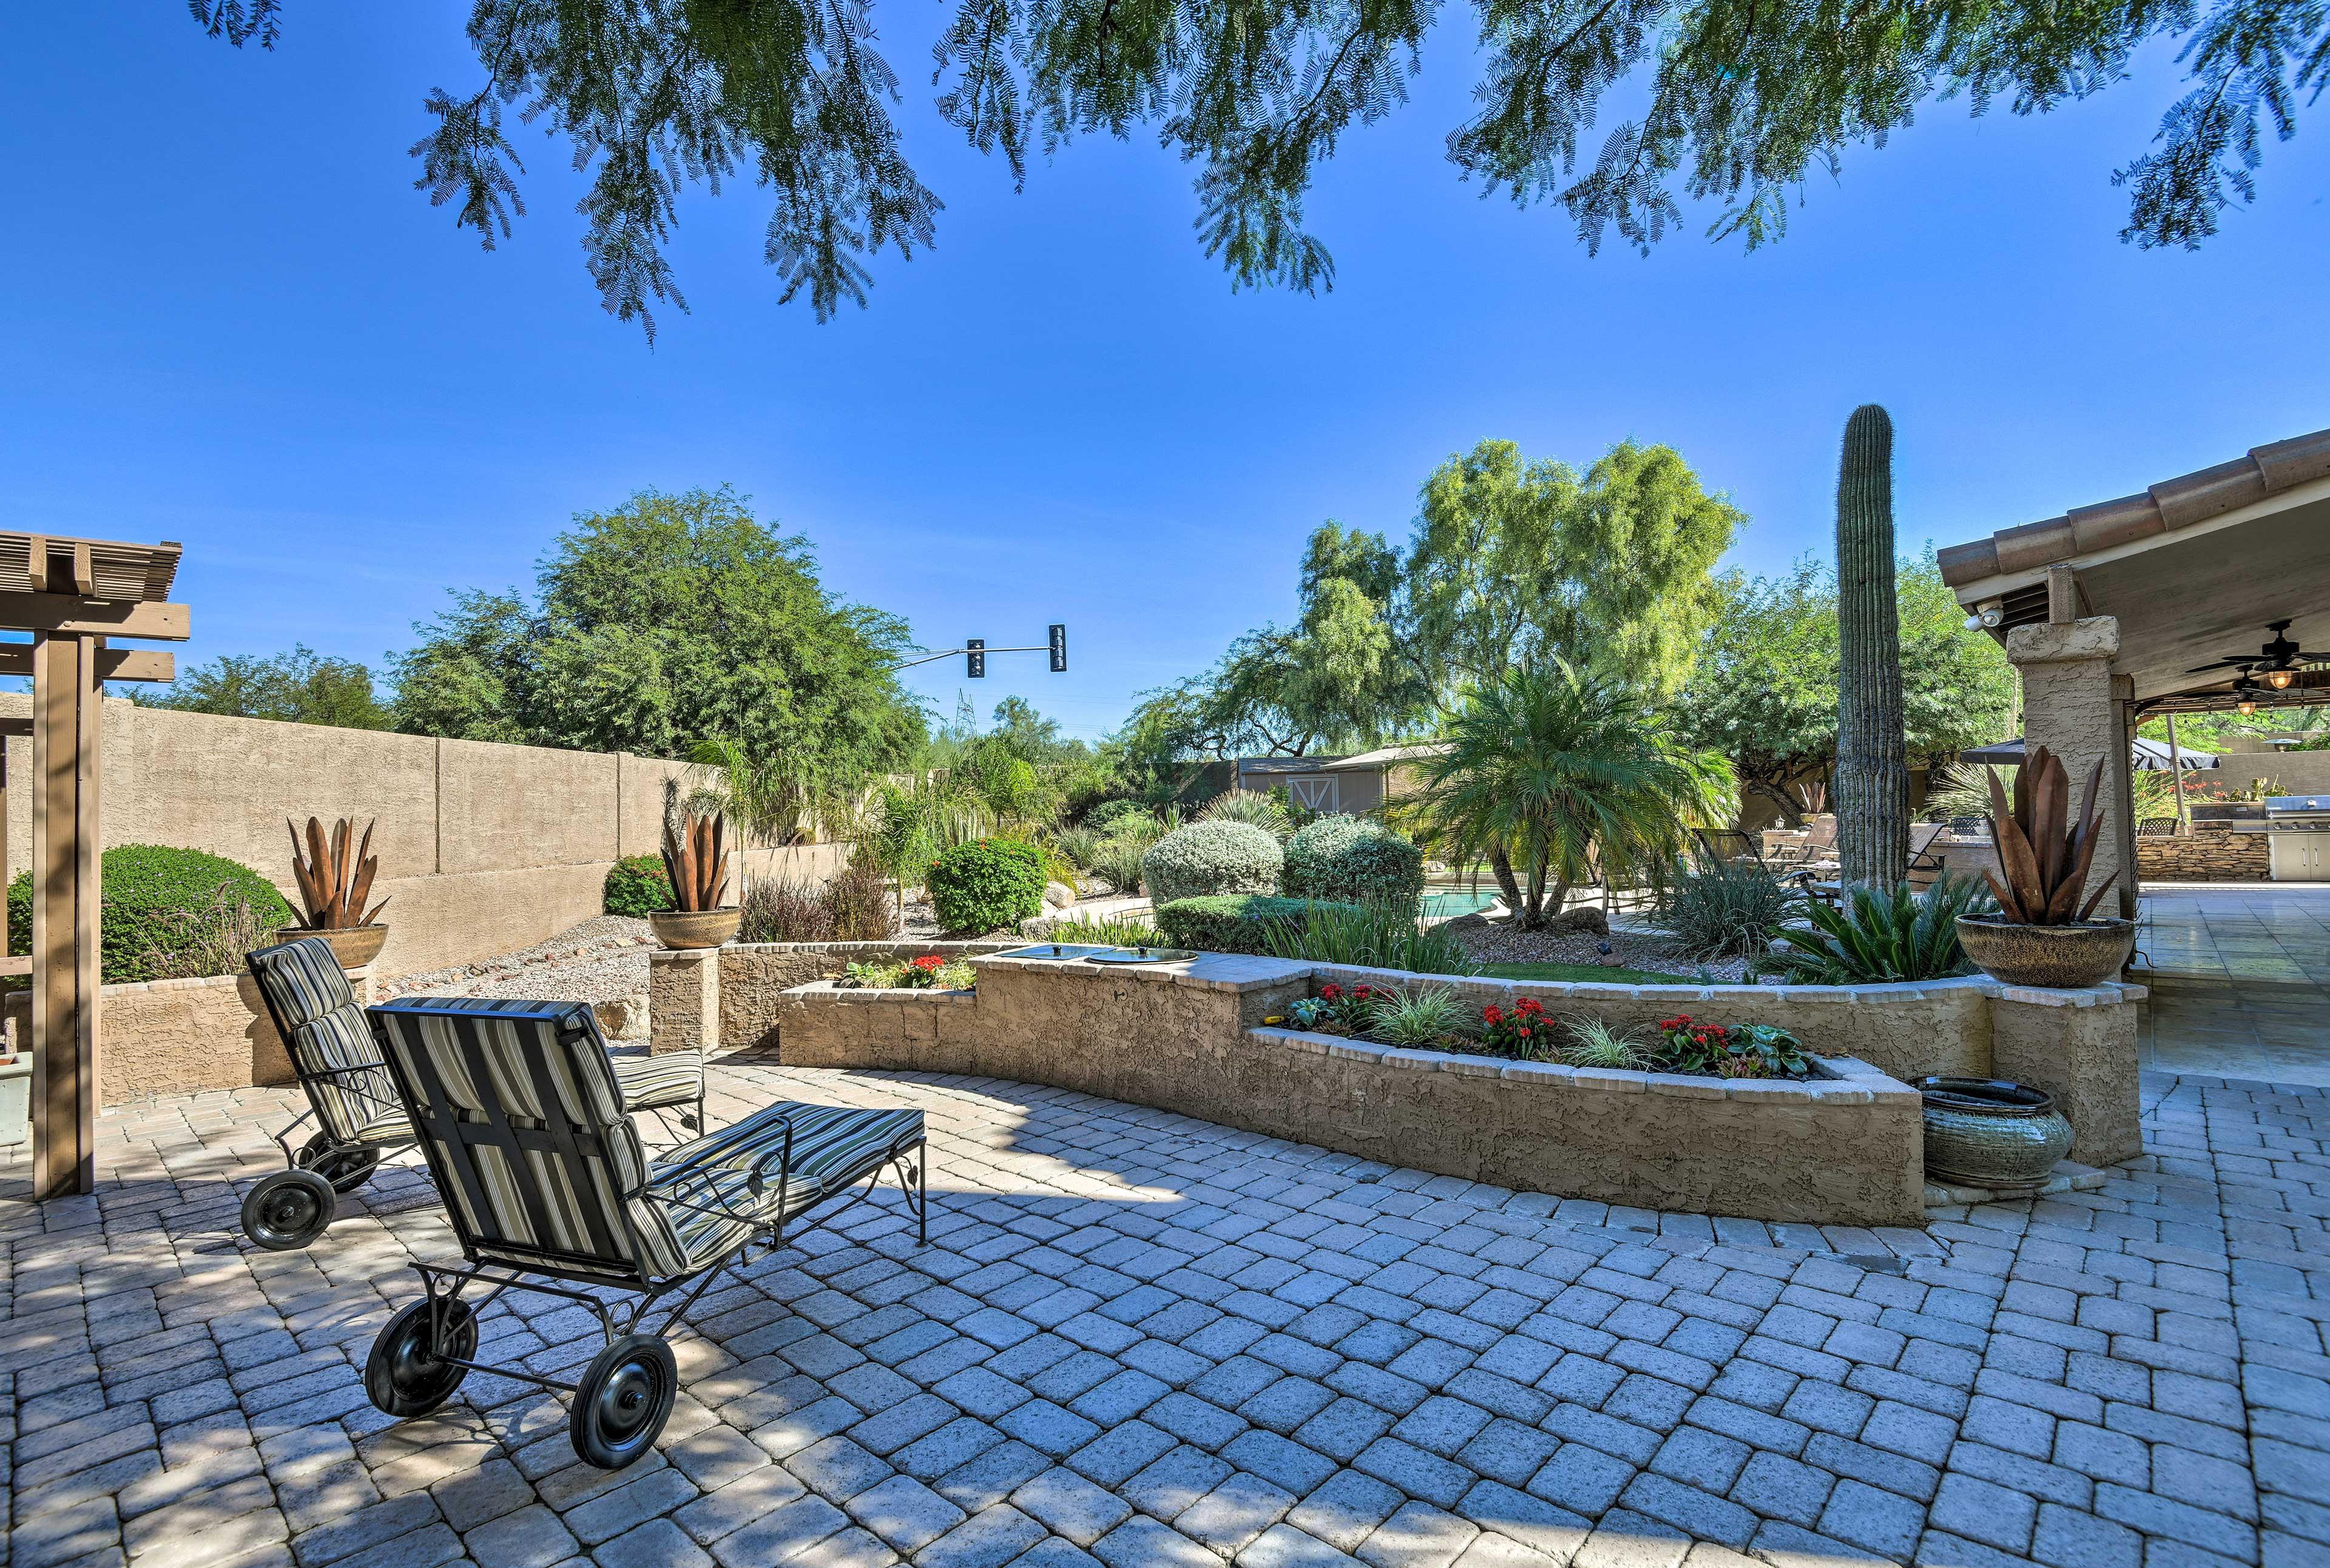 The desert landscaping gives you a true sense of being on an Arizona adventure!